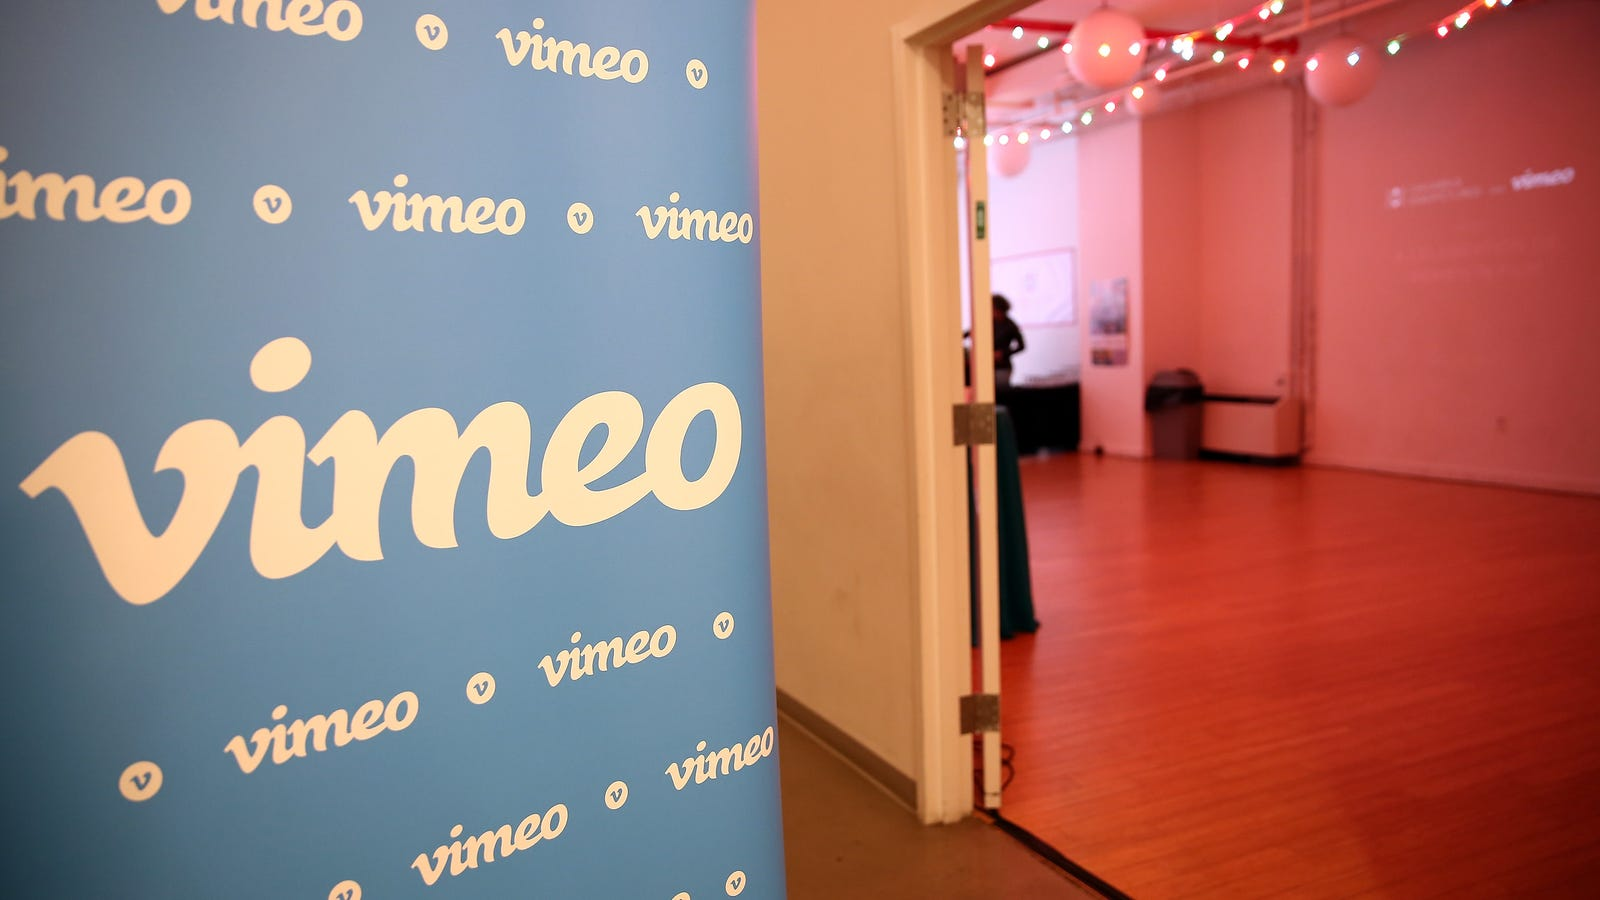 Vimeo Slapped With Lawsuit For Collecting Biometric Data Without User Consent